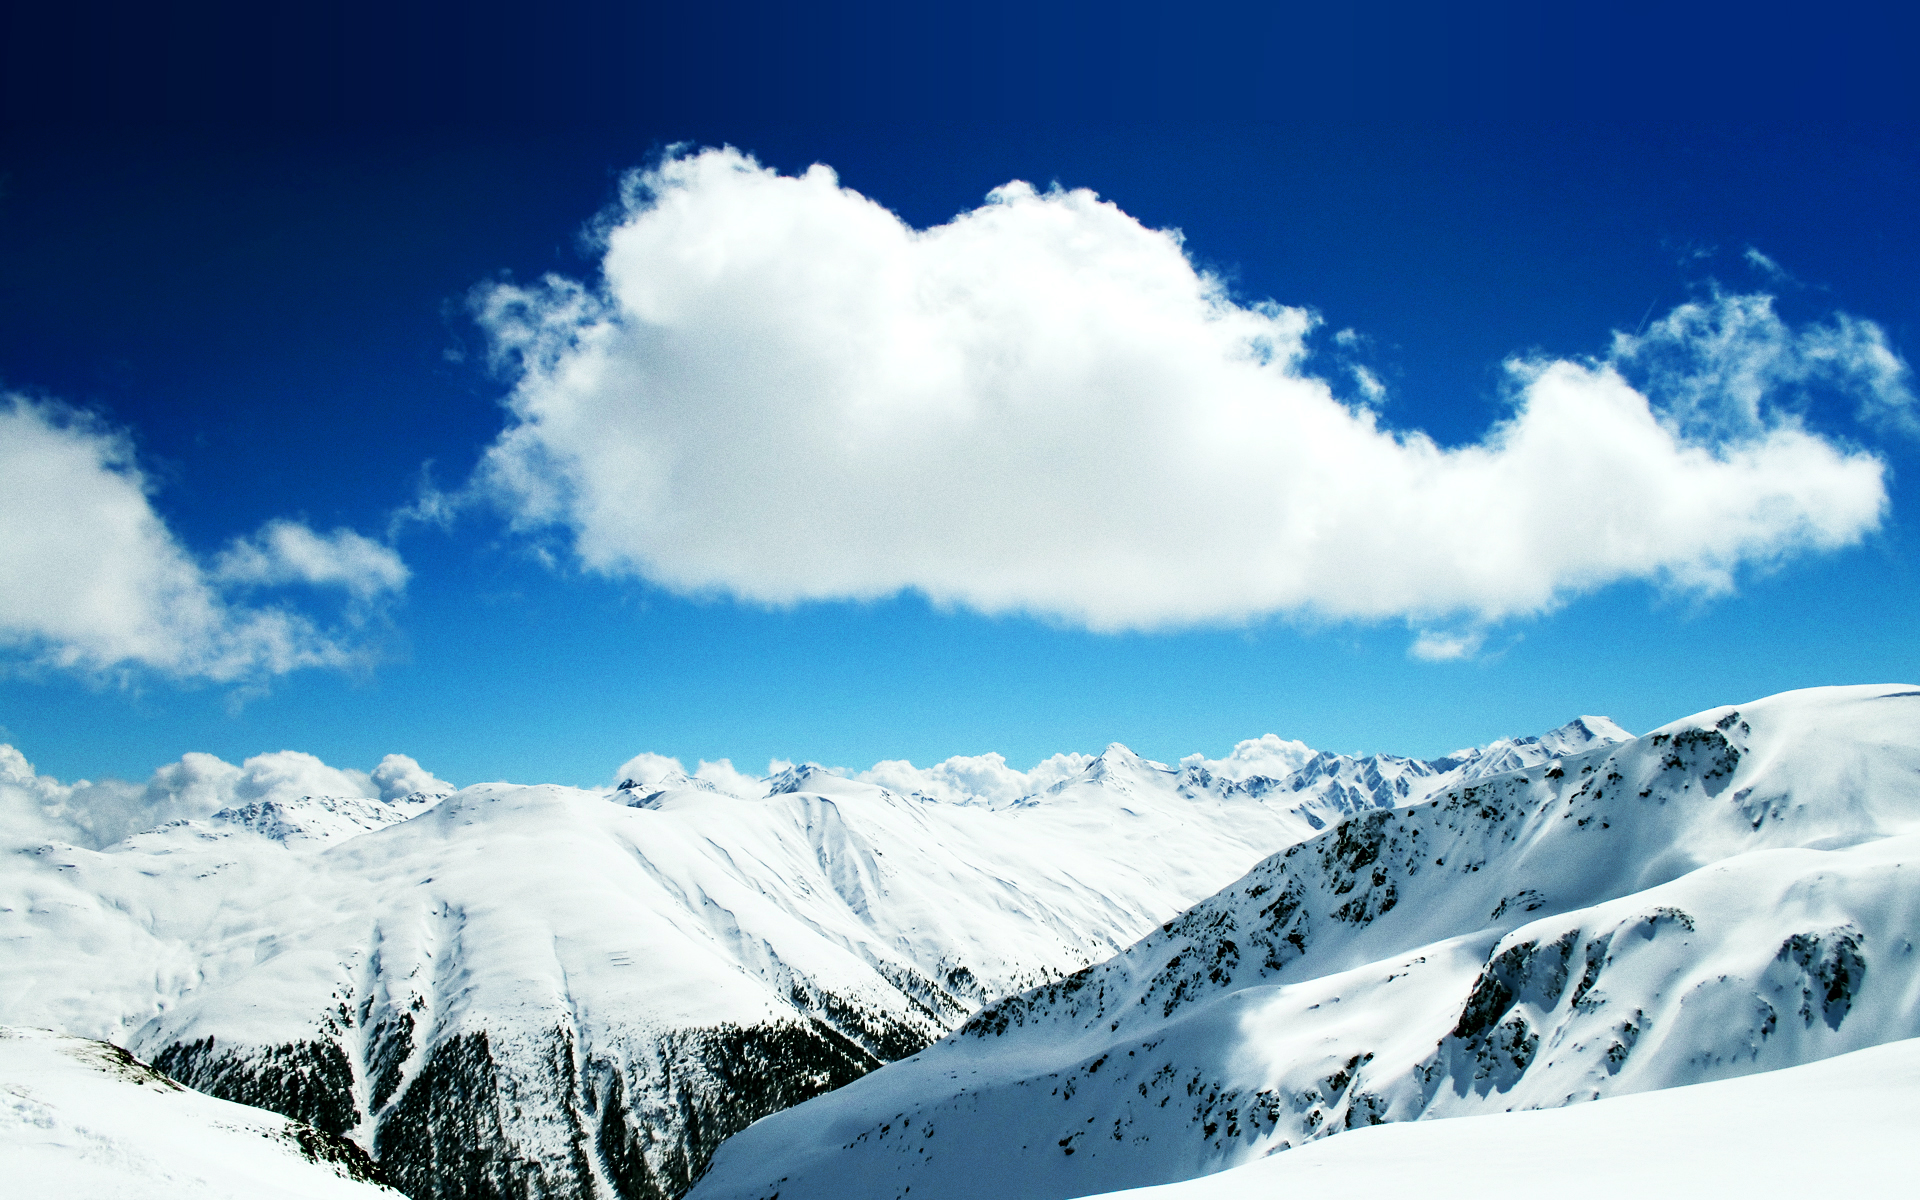 Snow Mountains Background Winter snow mountains wallpapers hd 1920x1200